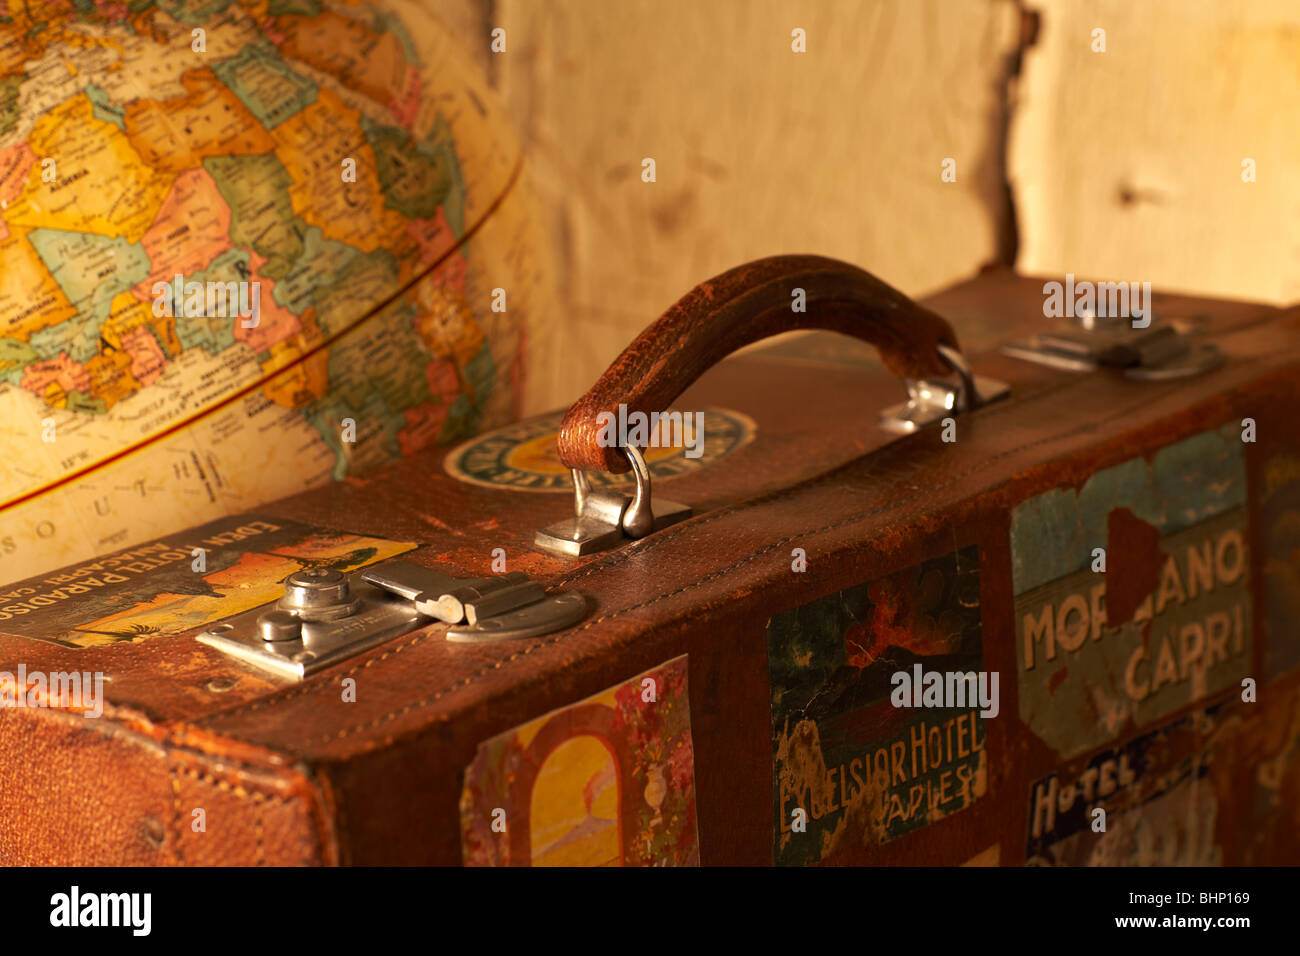 Antique globe map stock photos antique globe map stock images alamy old labeled antique suitcase next to world globe stock image gumiabroncs Choice Image